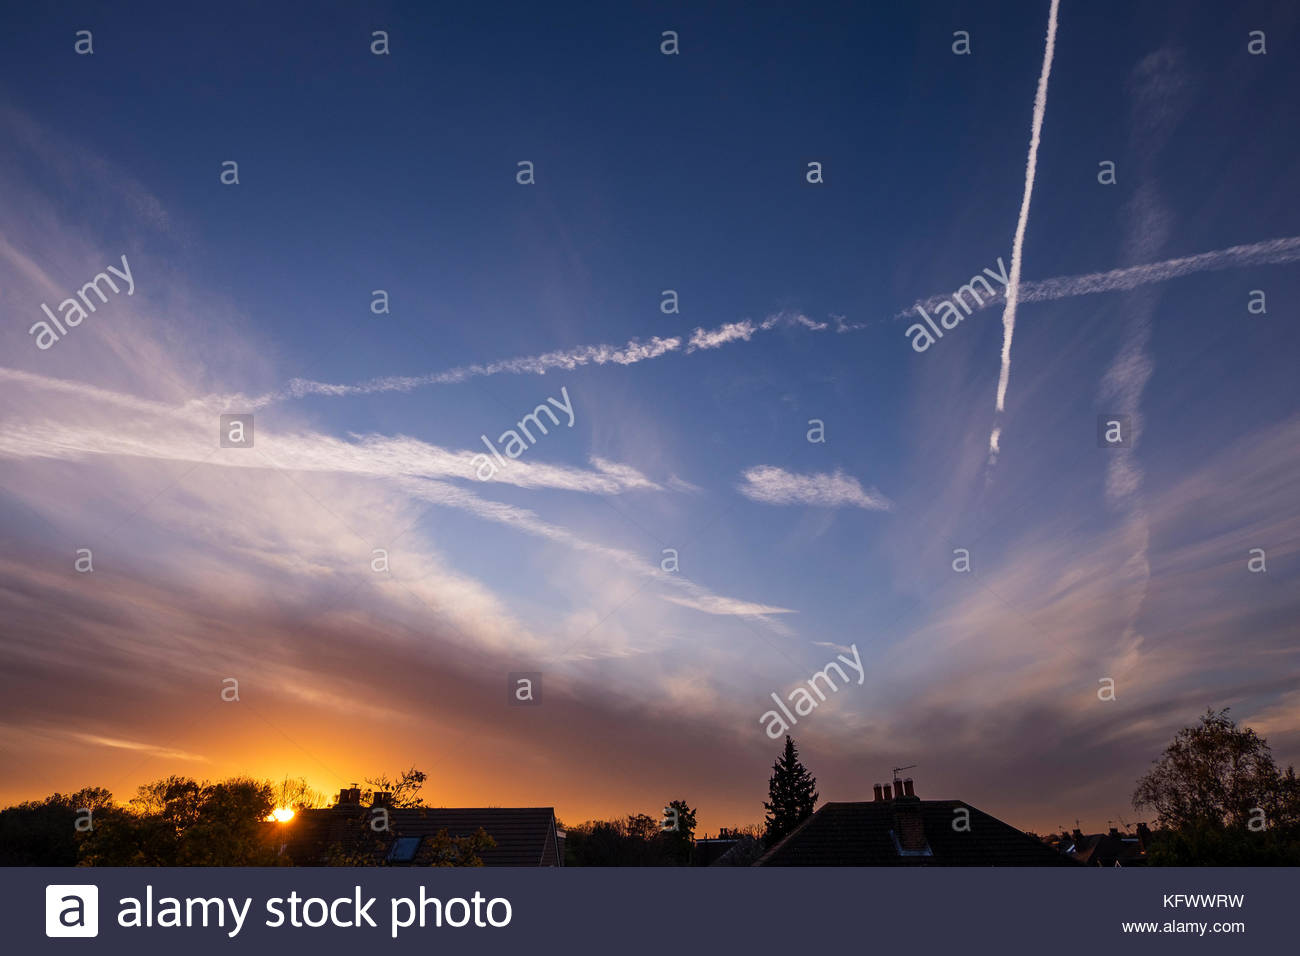 Wimbledon, London, UK. 1 November, 2017. Vapour trails and orange sunset clouds above rooftops in SW London. Credit: - Stock Image